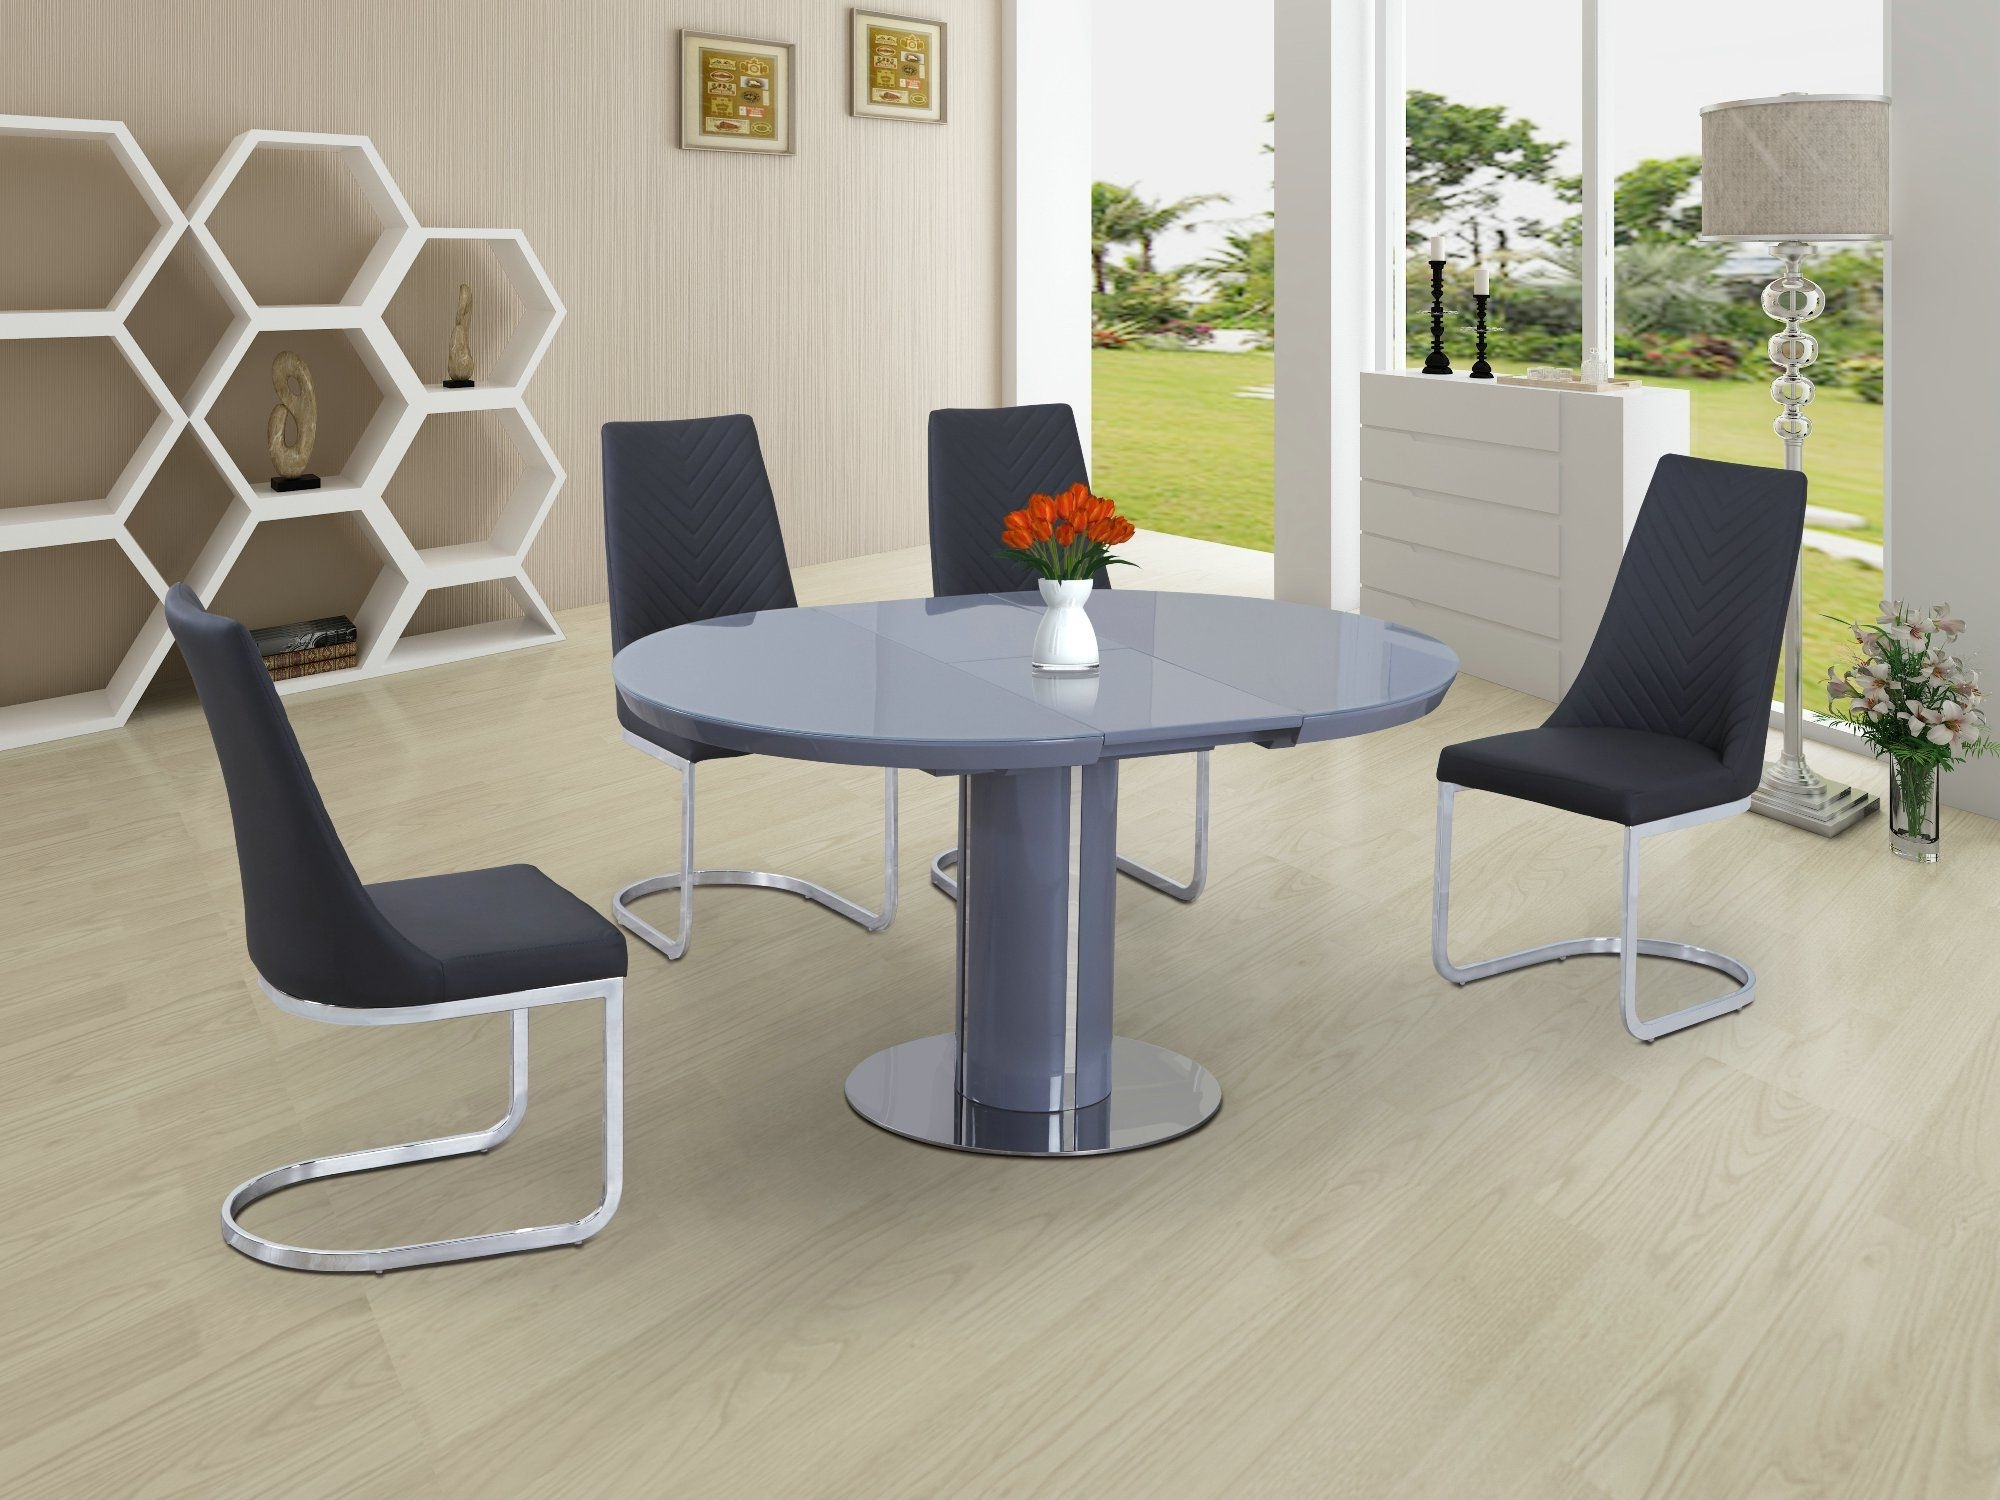 Eclipse Round / Oval Gloss & Glass Extending 110 To 145 Cm Dining Table –  Grey In Most Recently Released Glass Extending Dining Tables (Gallery 12 of 25)